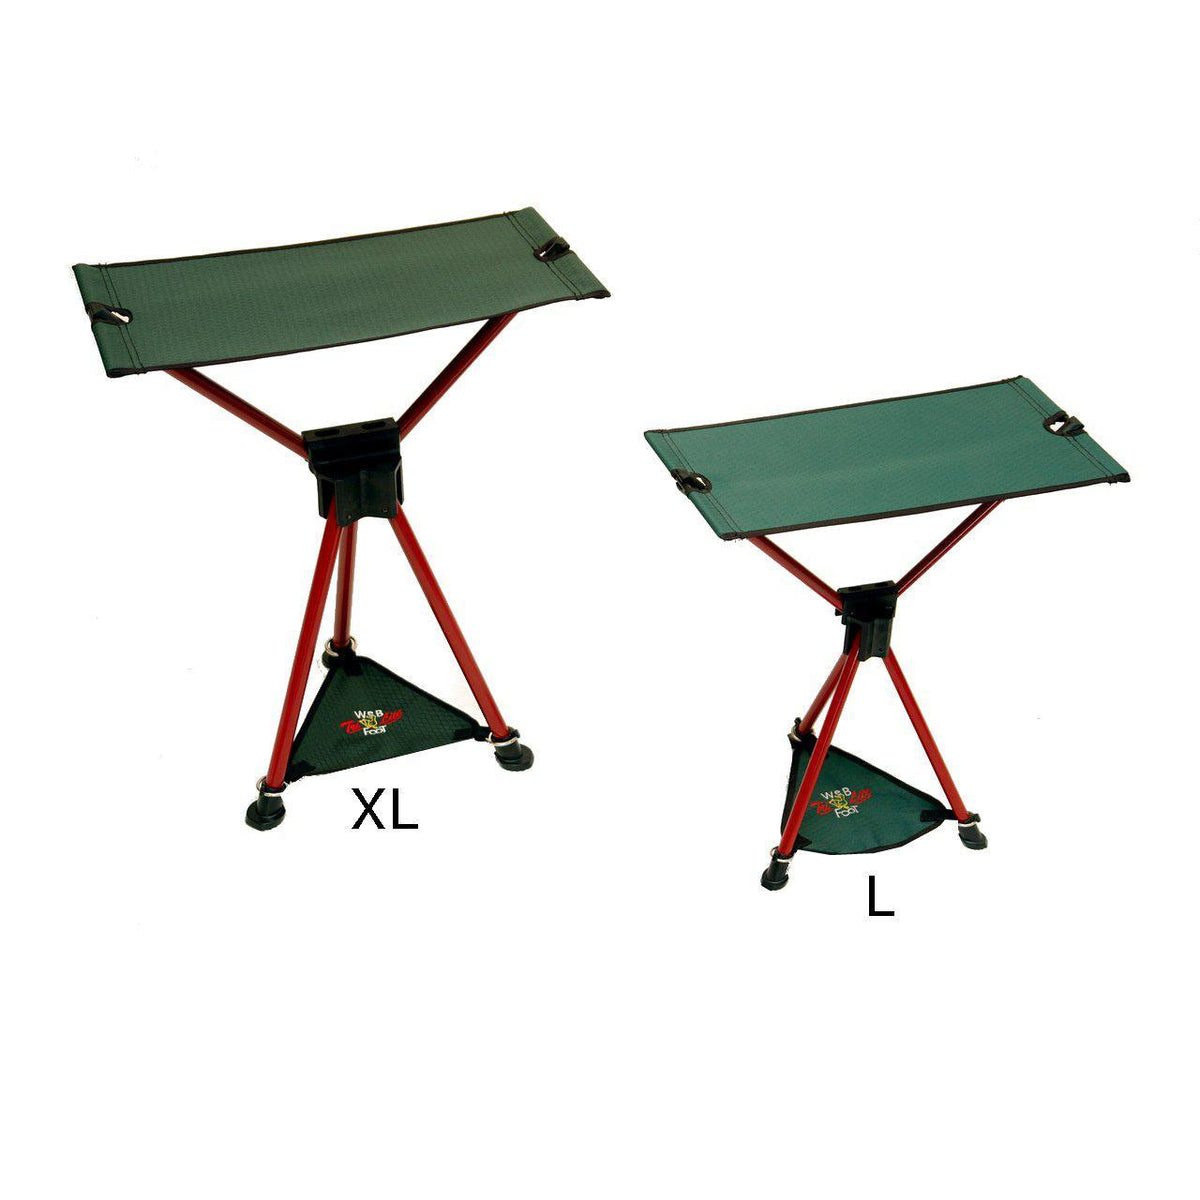 TriLite Stool Sizes